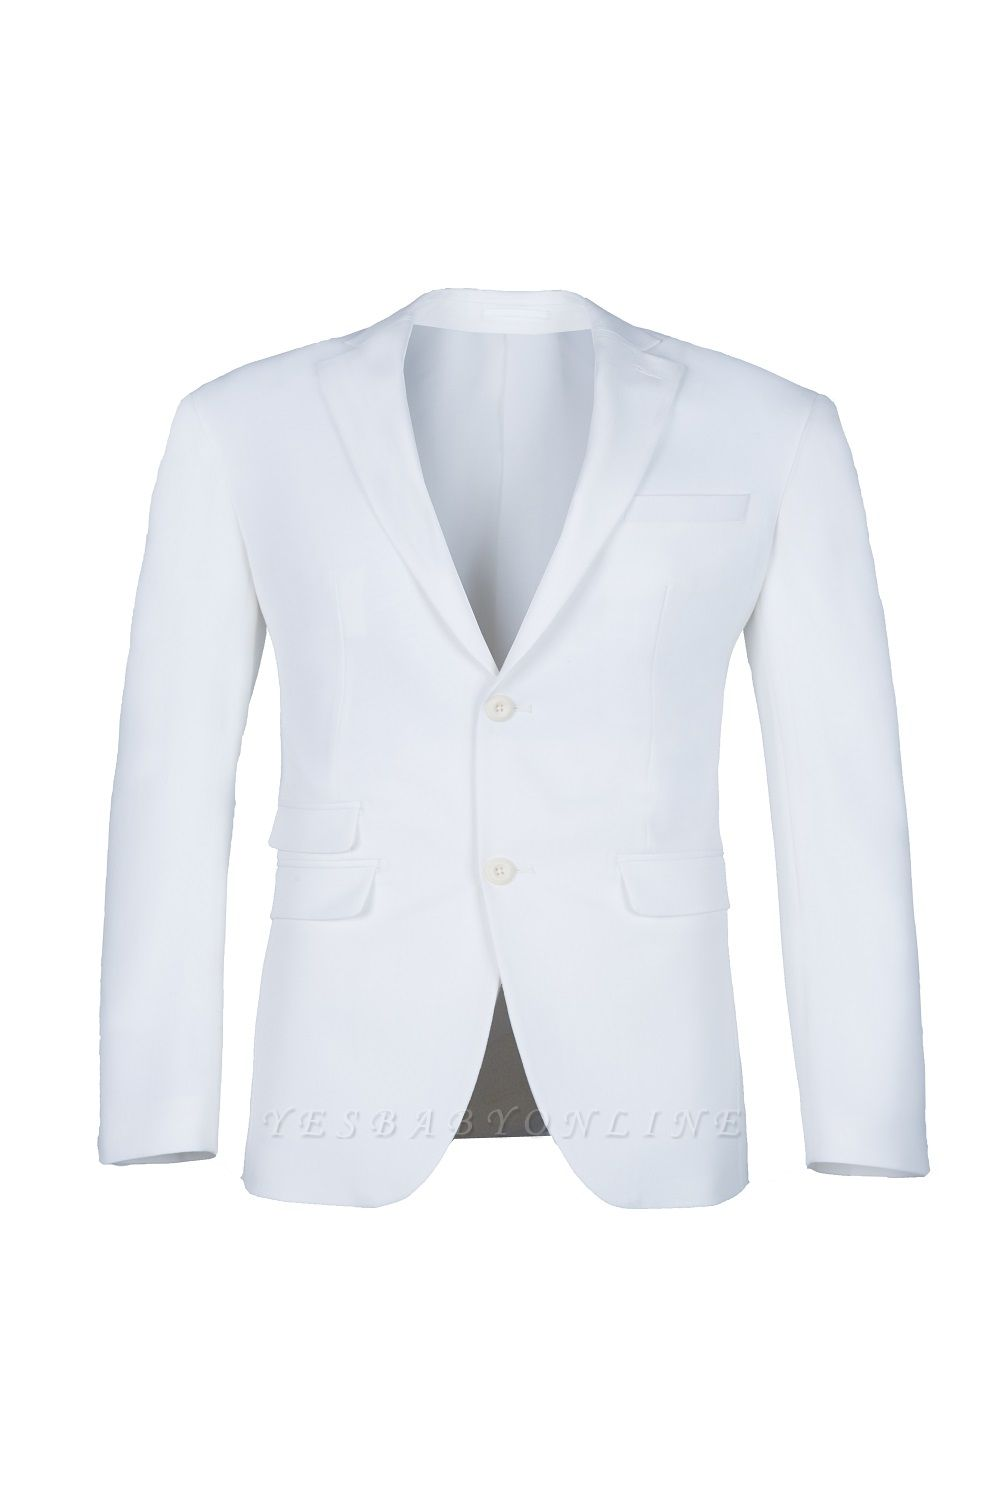 High Quality White Back Vent Two Button Casual Suit Groomsmen Peak Lapel